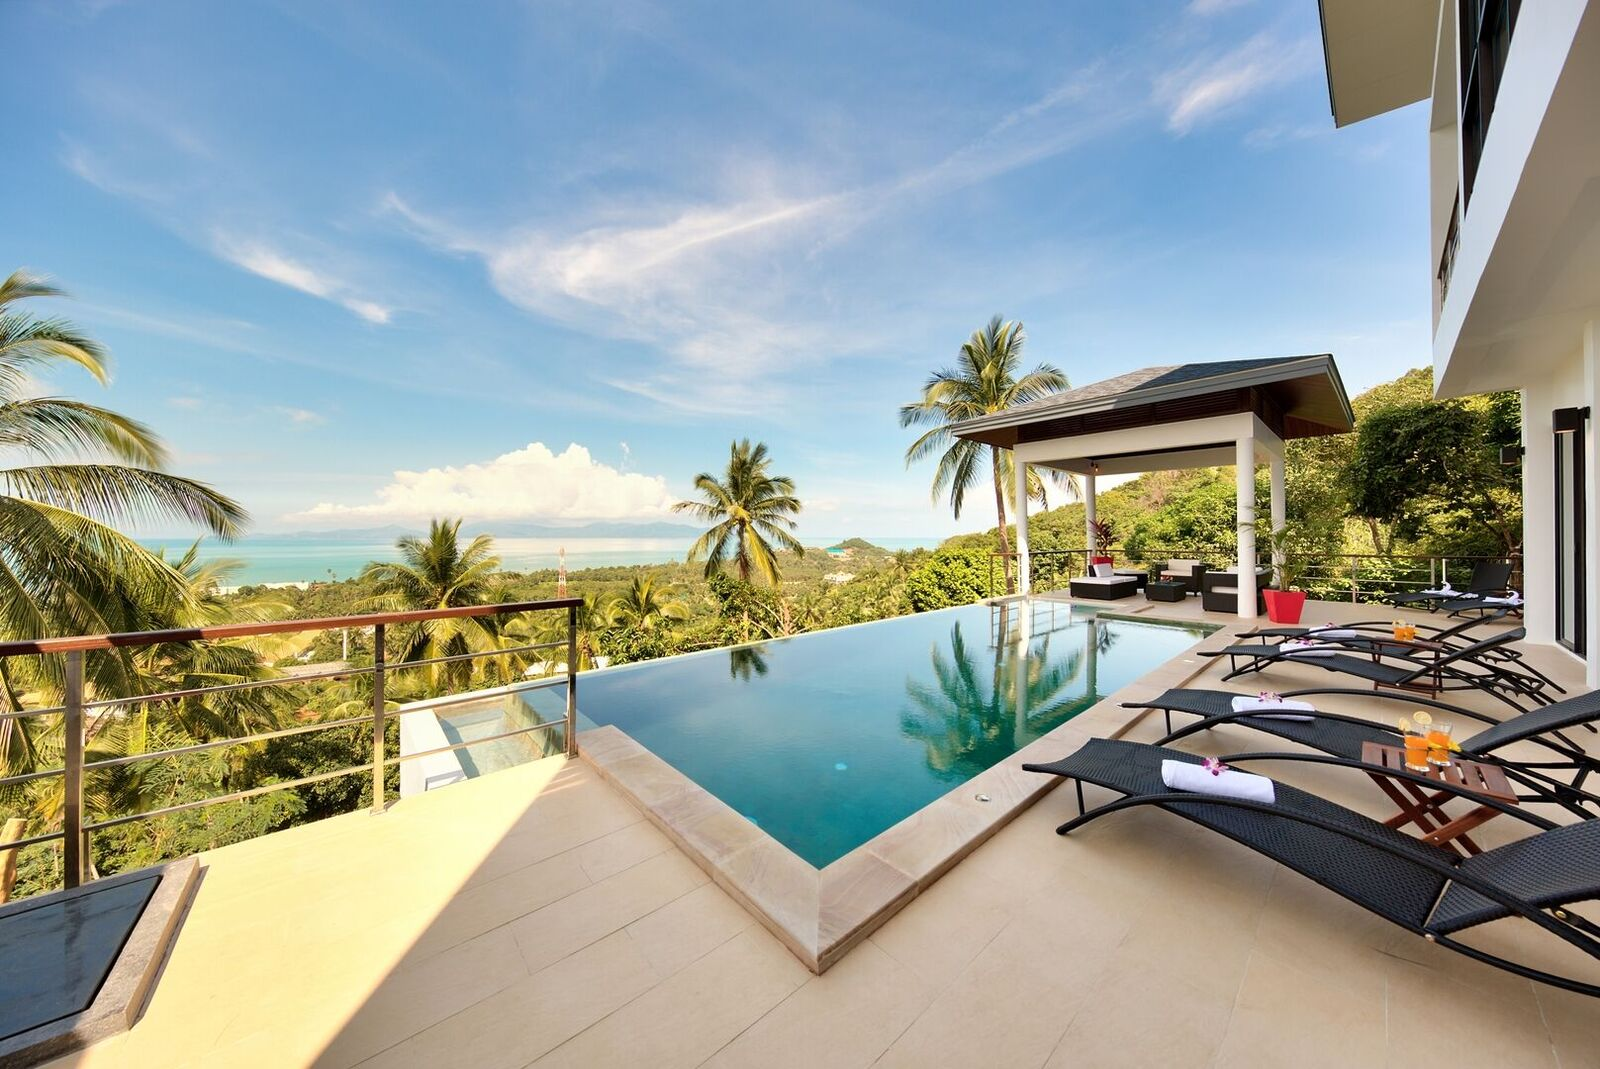 2 Bedroom Option Sea View Villa with Private Pool at Maenam Ko Samui